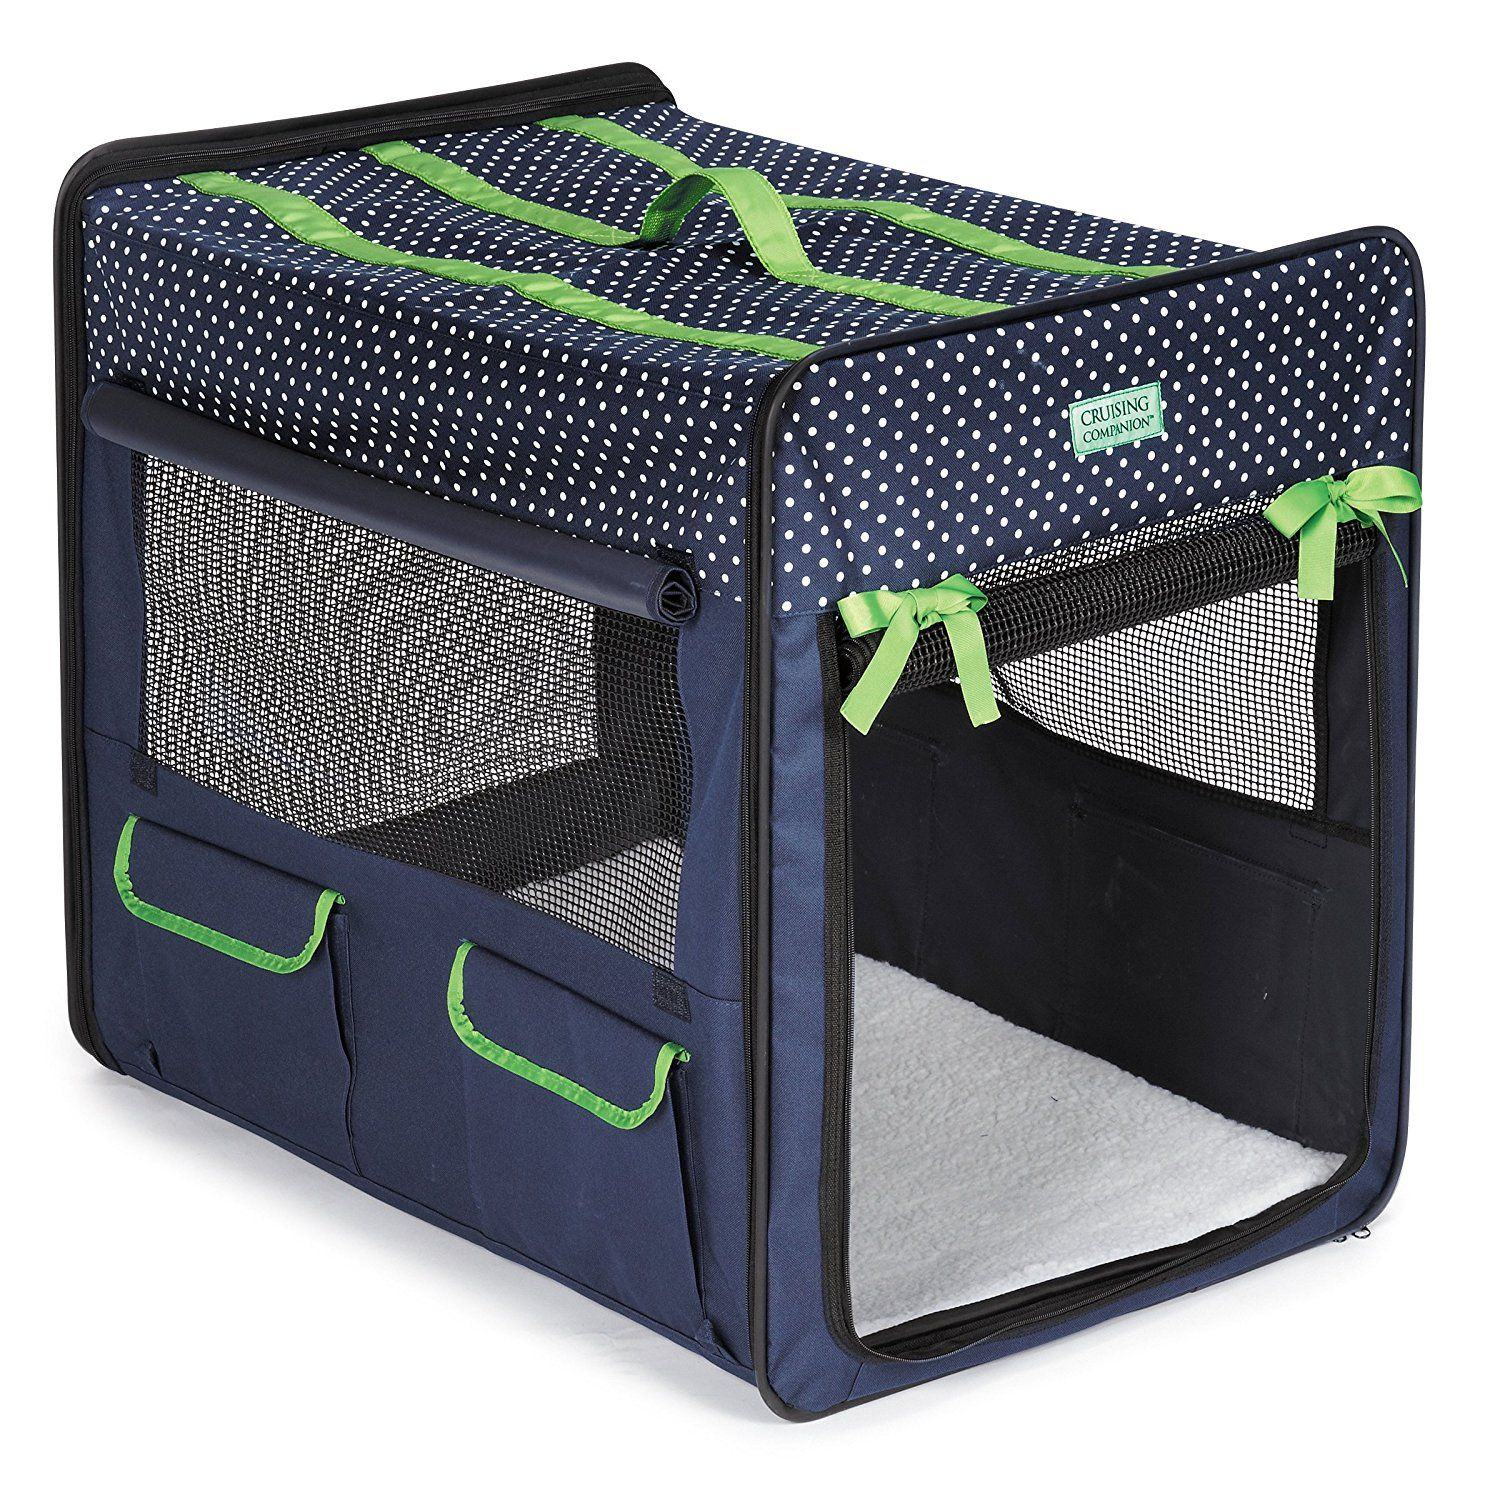 Cruising Companion Polka Dot Collapsible Dog Crate Remarkable